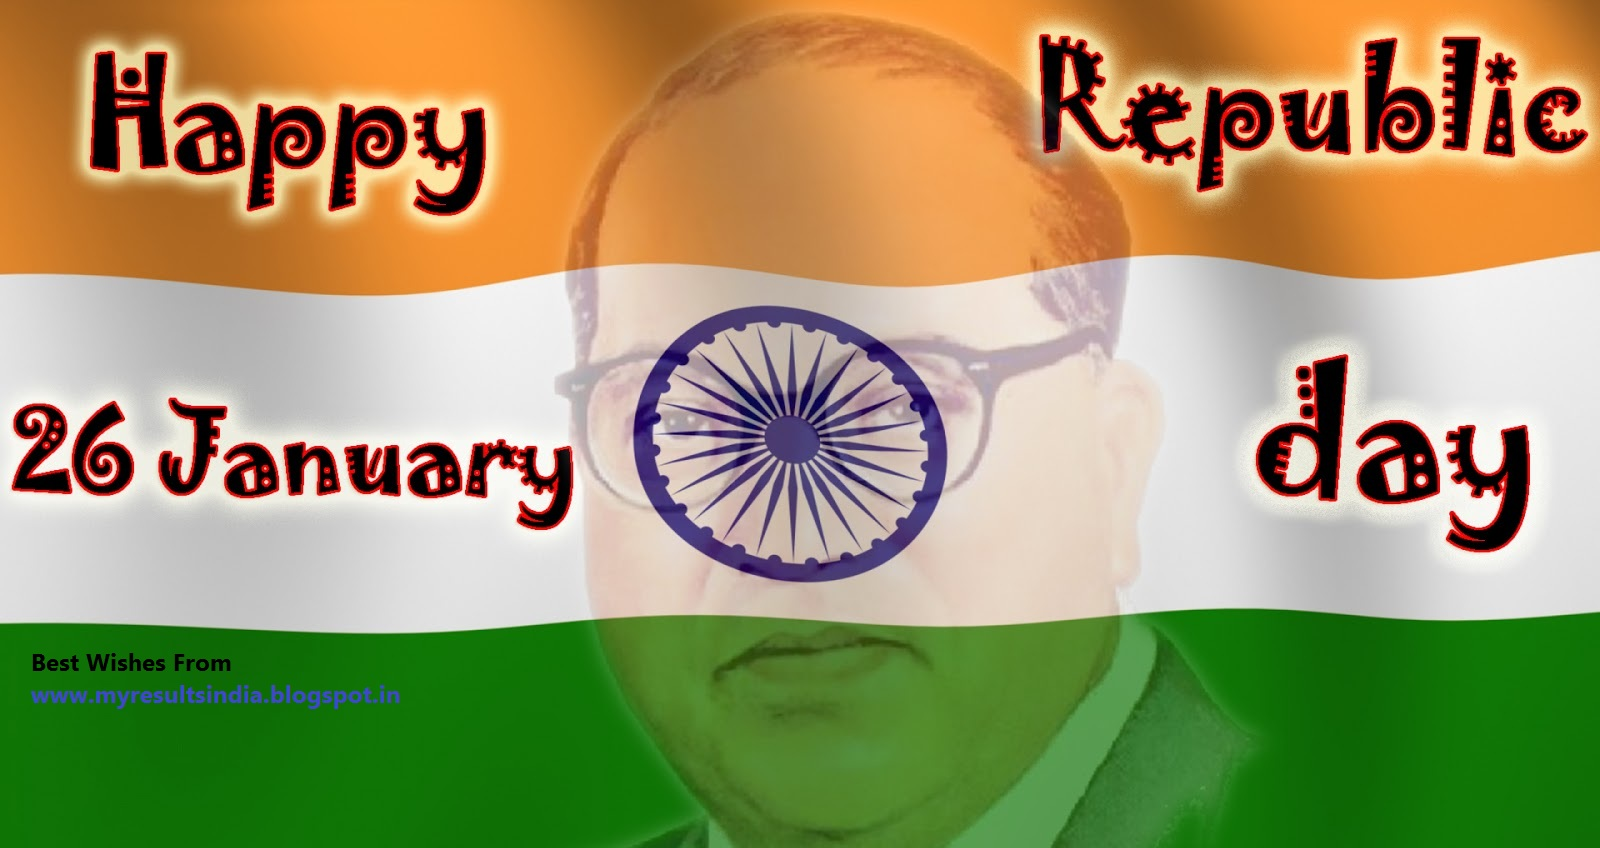 Gandhi Ji With Indian Flag Hd: Pic New Posts: Republic Day Hd Wallpaper Download